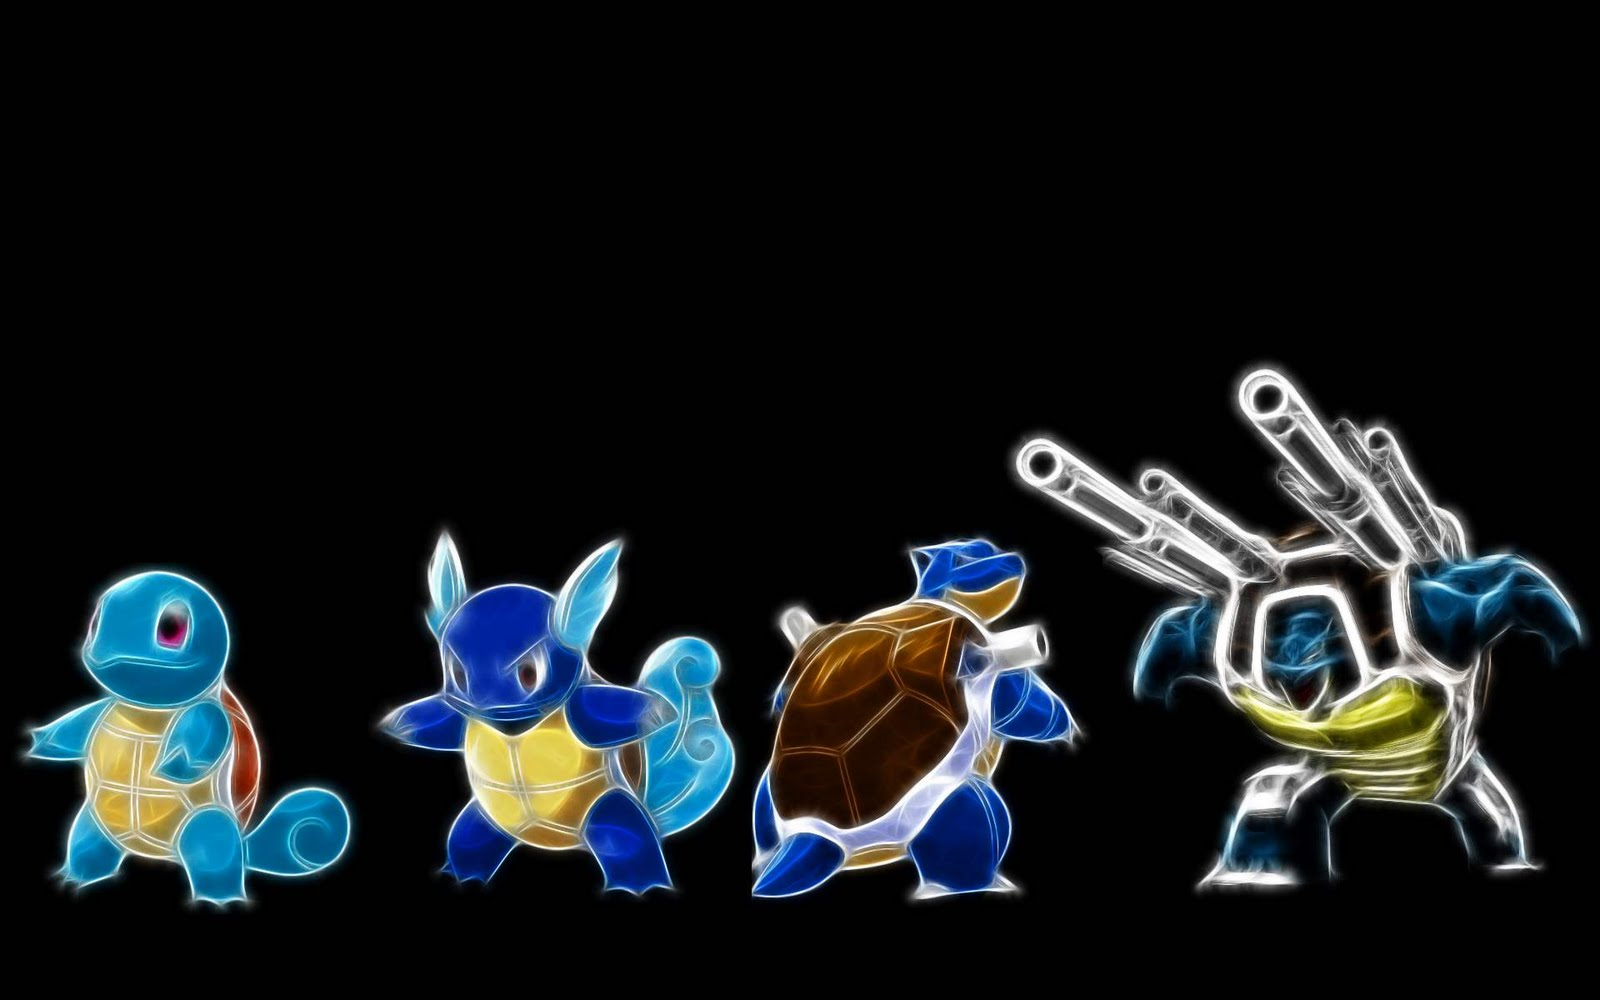 Cool Pokemon Wallpaper For Computer Images Pictures   Becuo 1600x1000